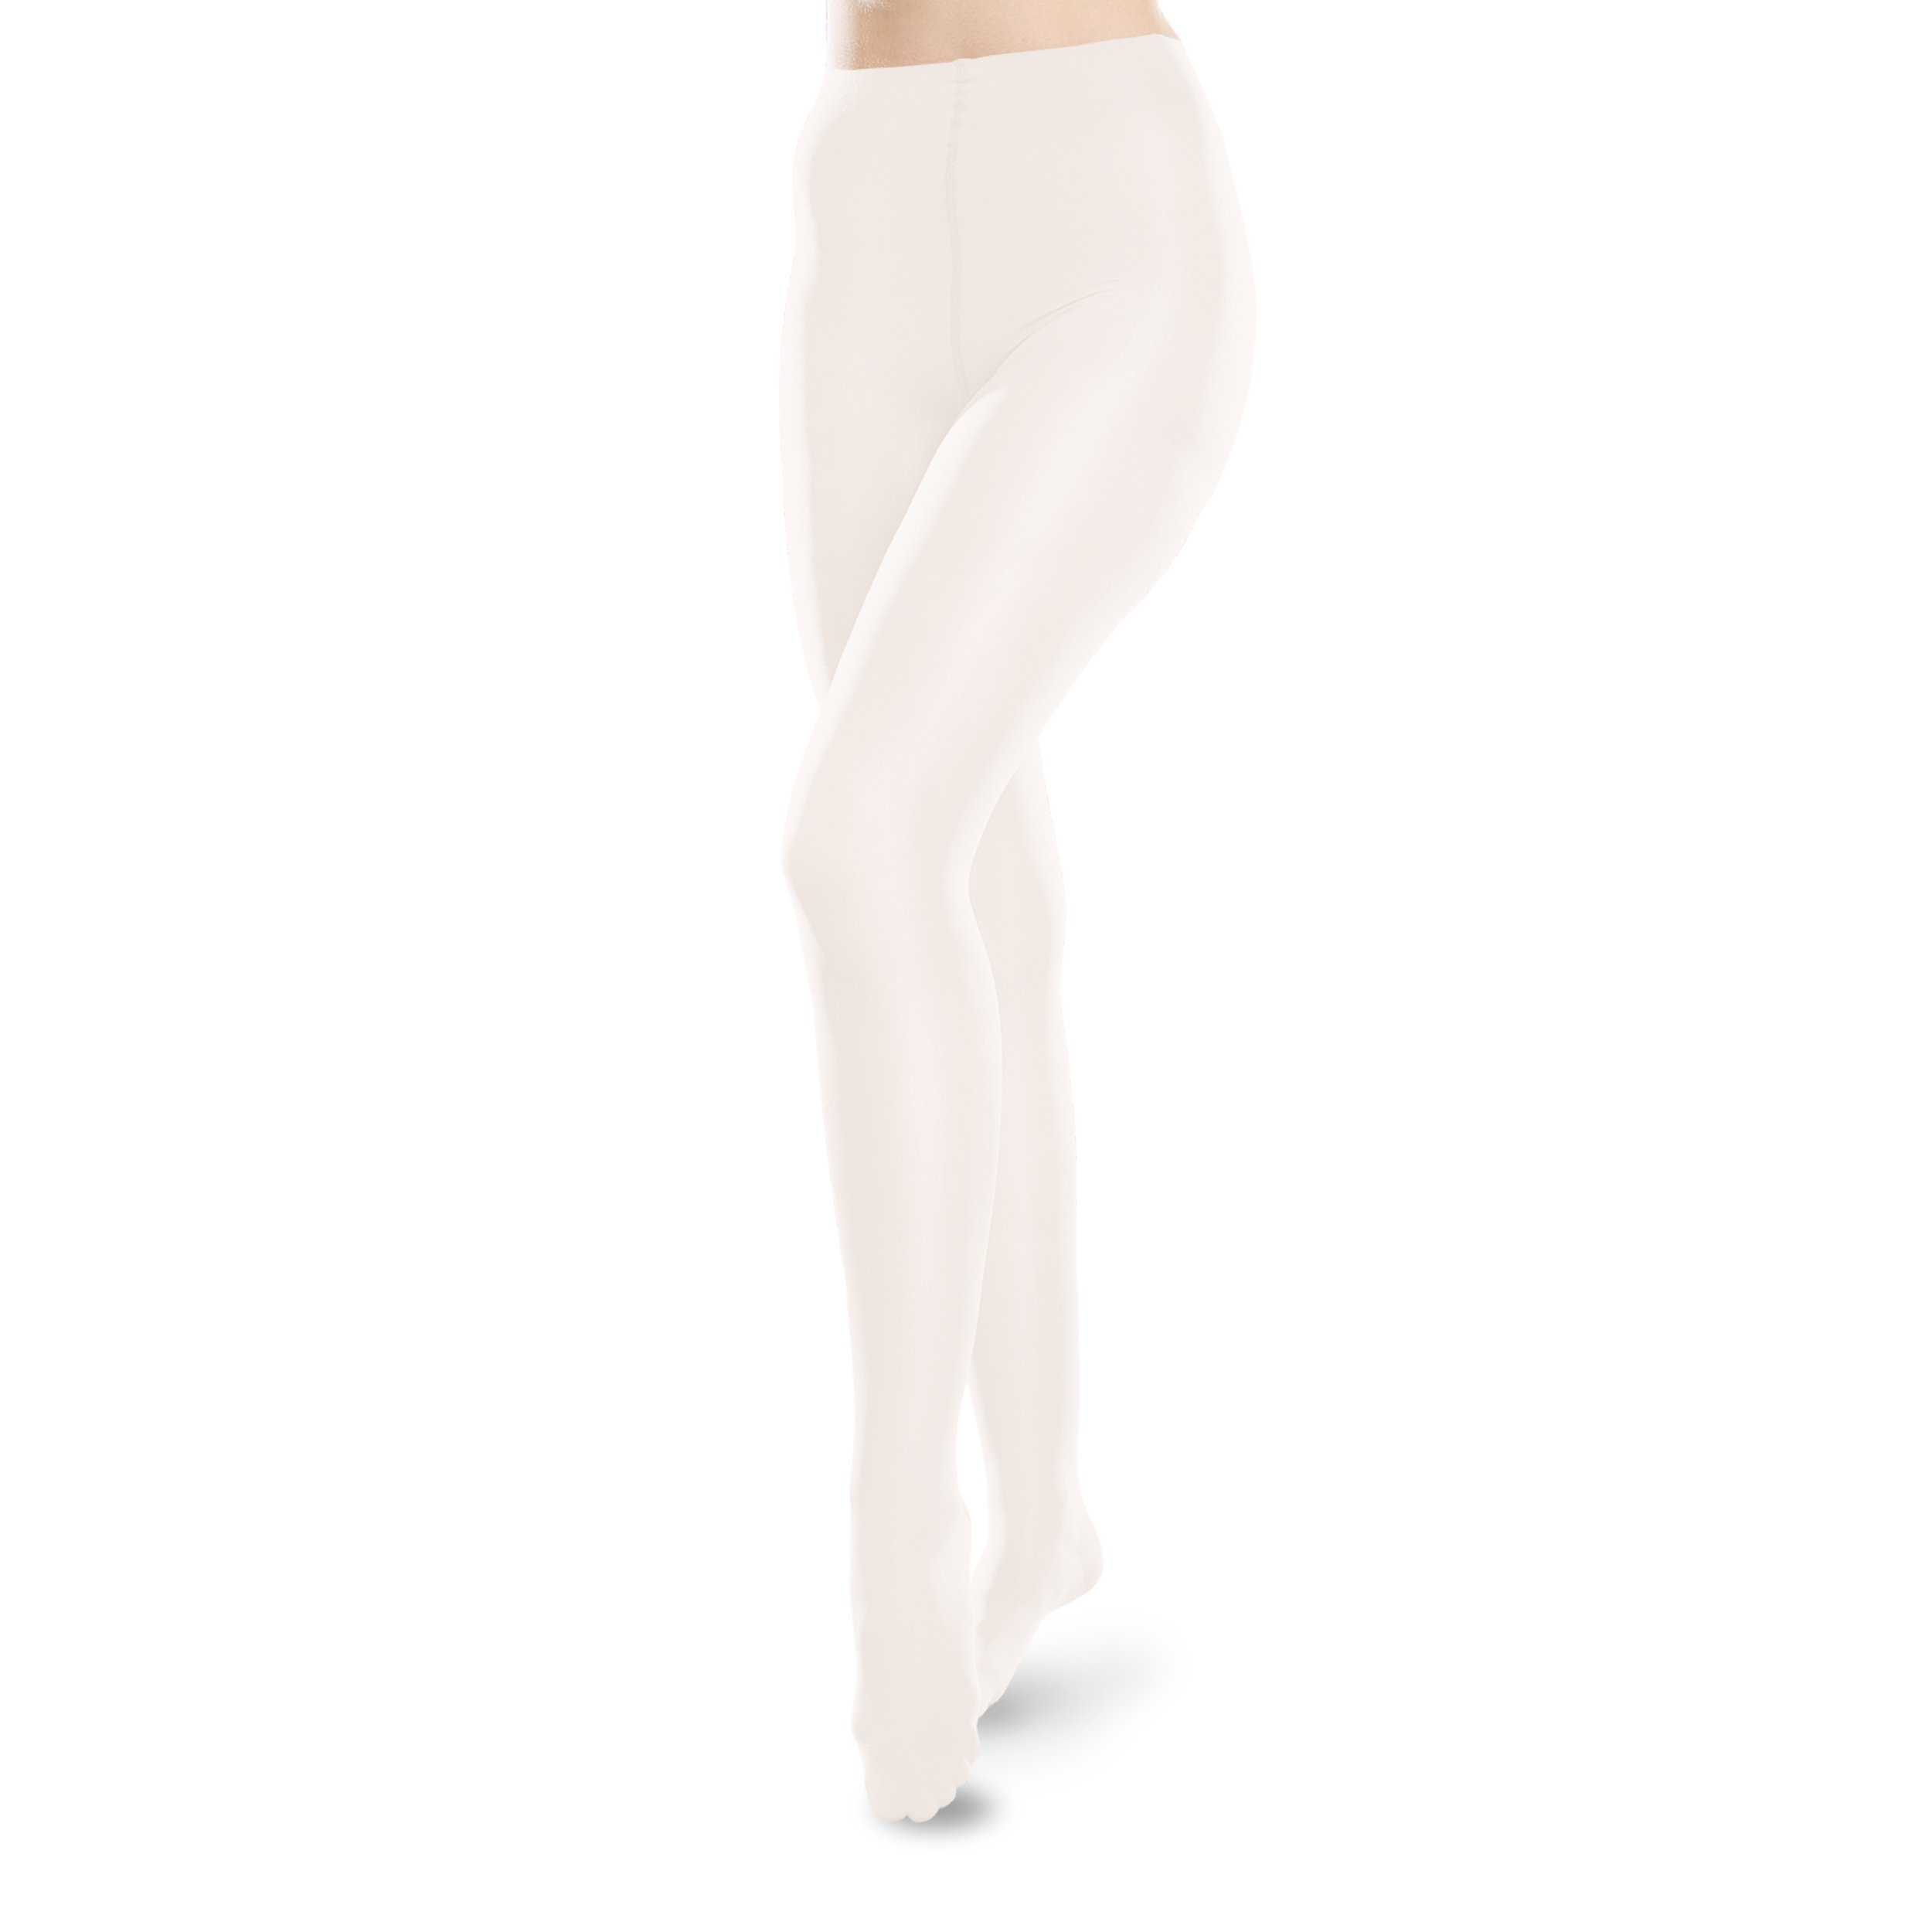 Ease Pantyhose - 15-20mmHg Medical Compression Tights (Winter White, L Long)